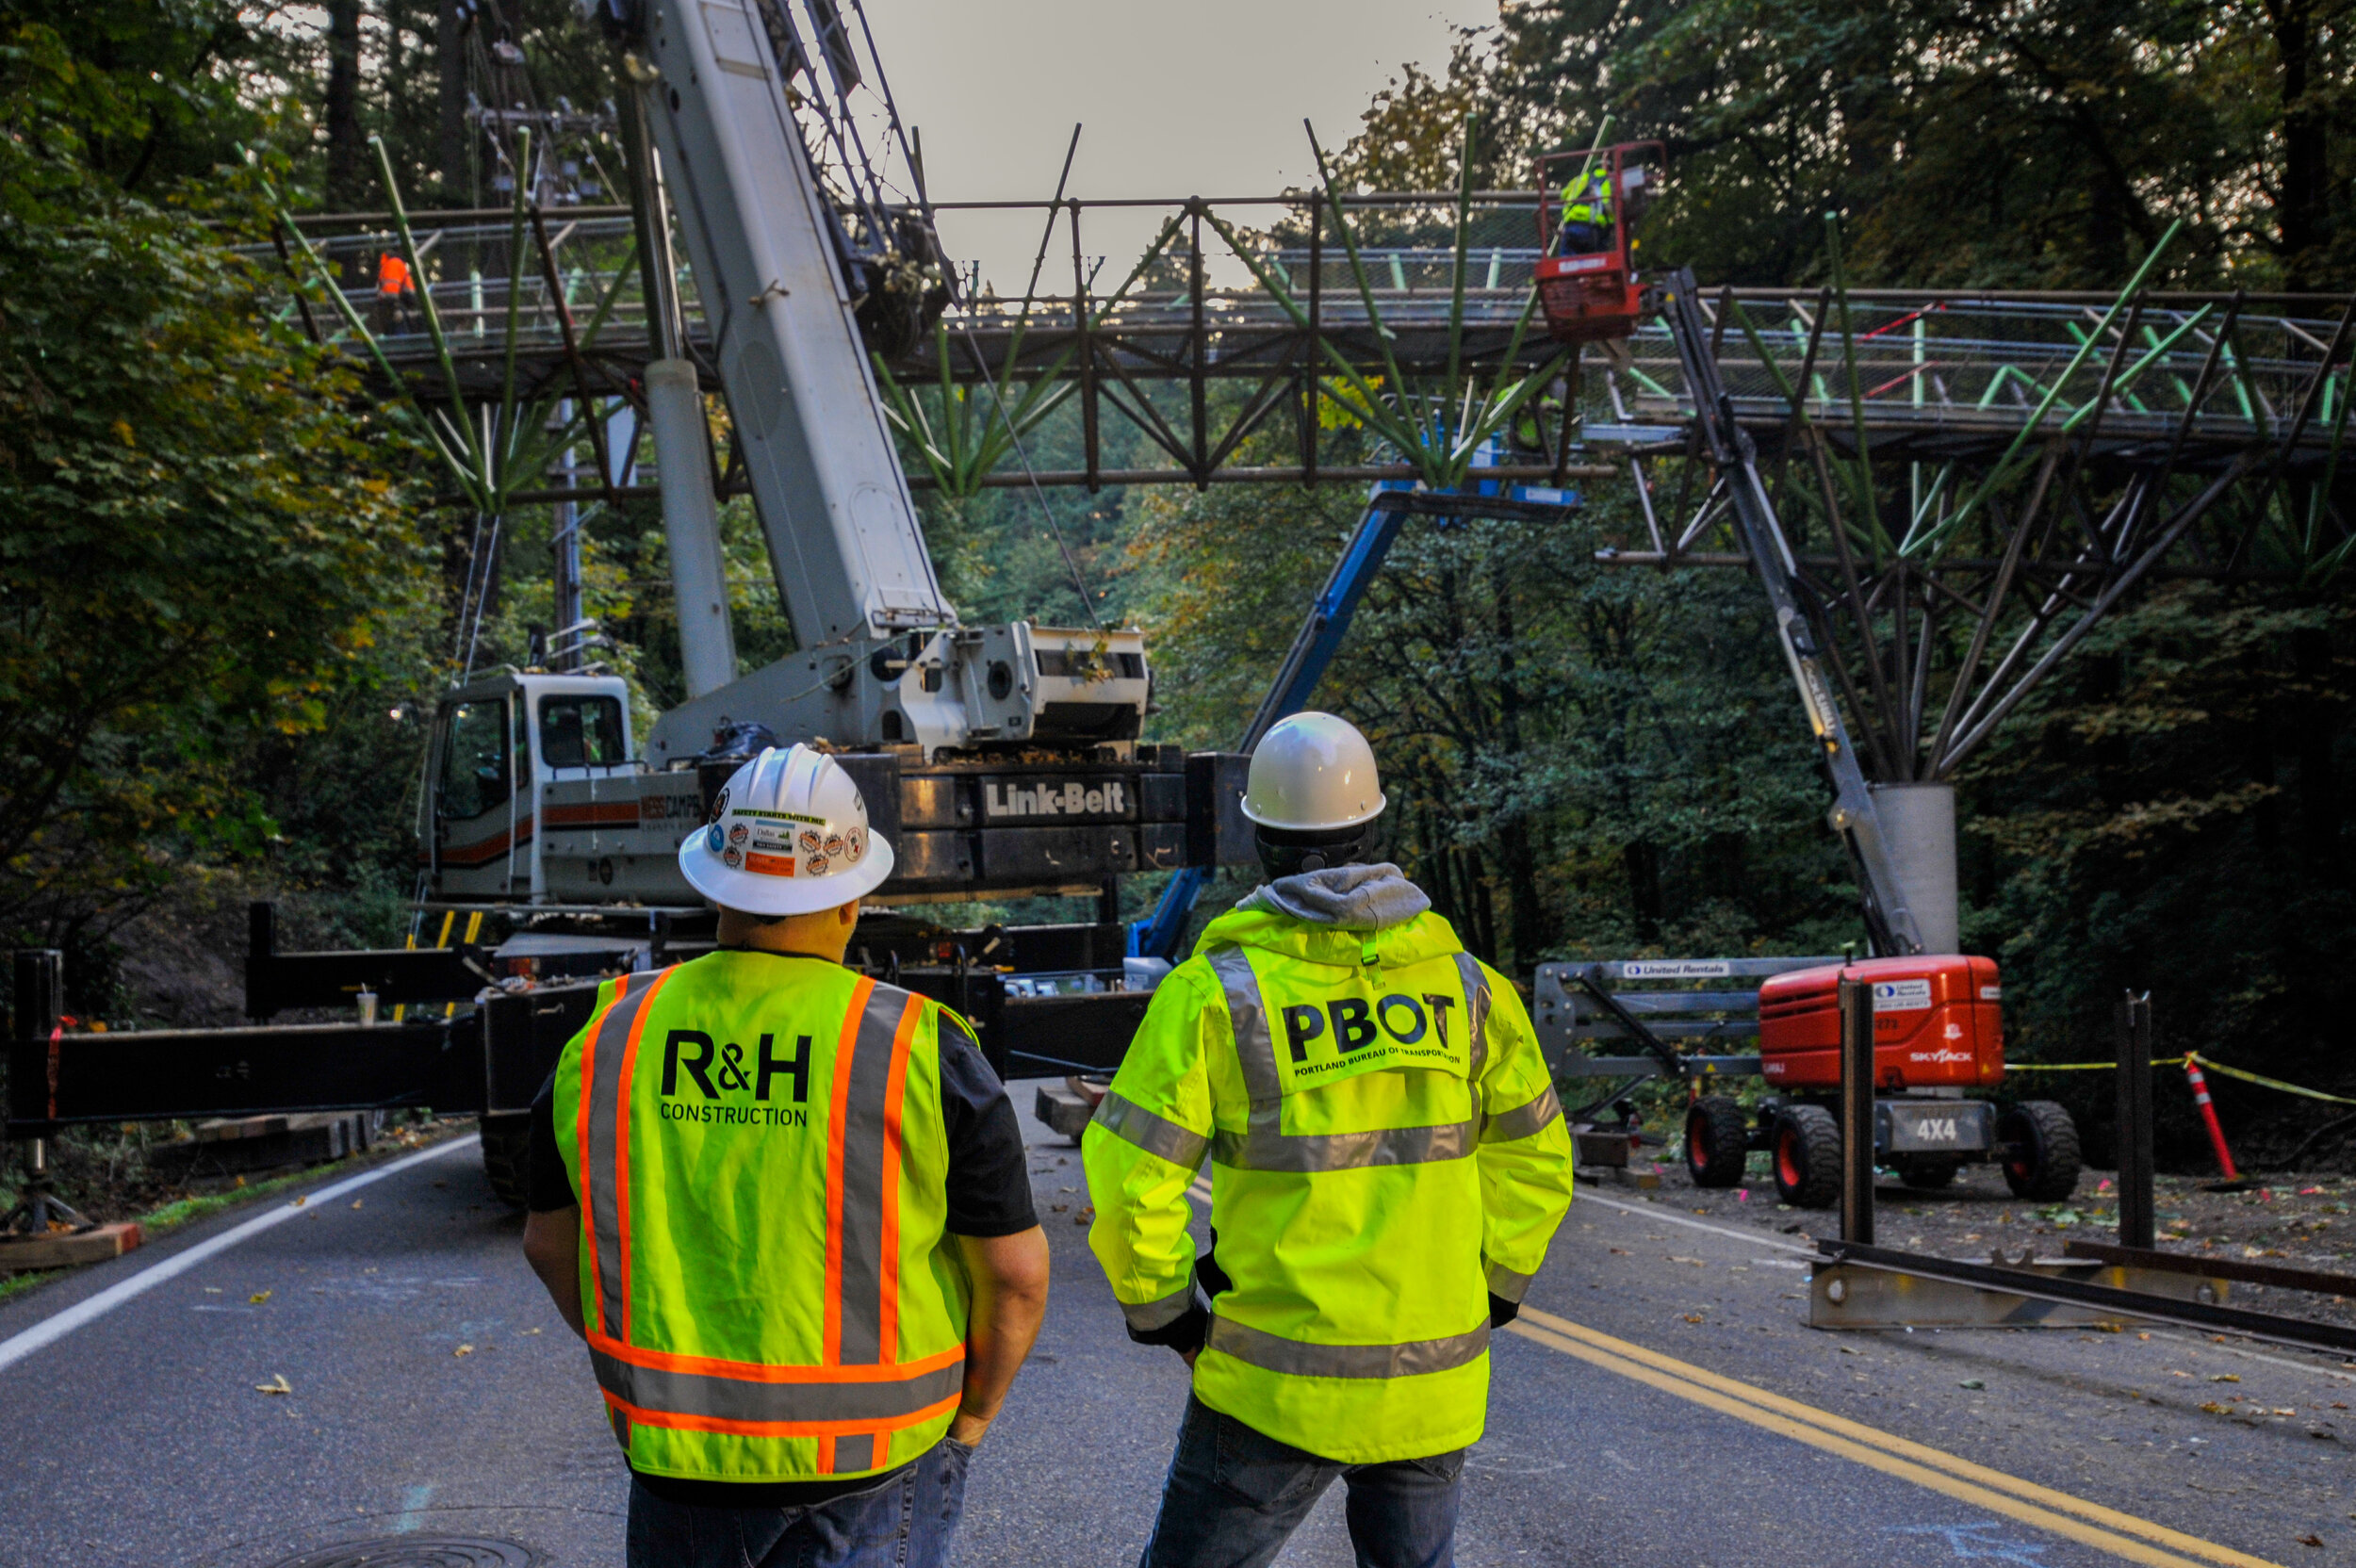 R&H Construction and PBOT watch as two pieces of the Barbara Walker Crossing are connected together on Saturday, October 12, 2019. Photo credit: Diego Diaz Photography